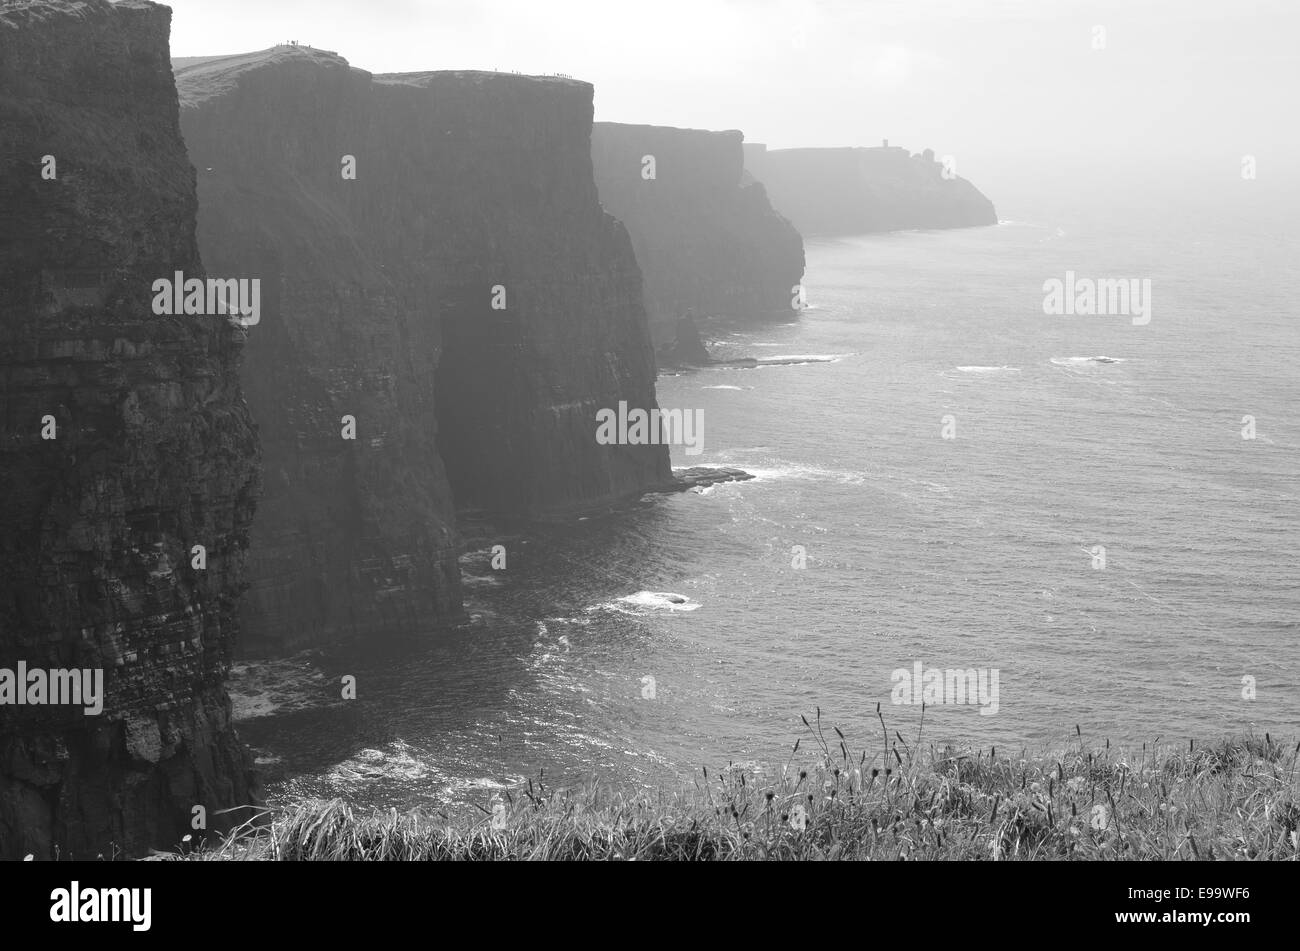 Cliffs of Moher (Ireland) - Stock Image